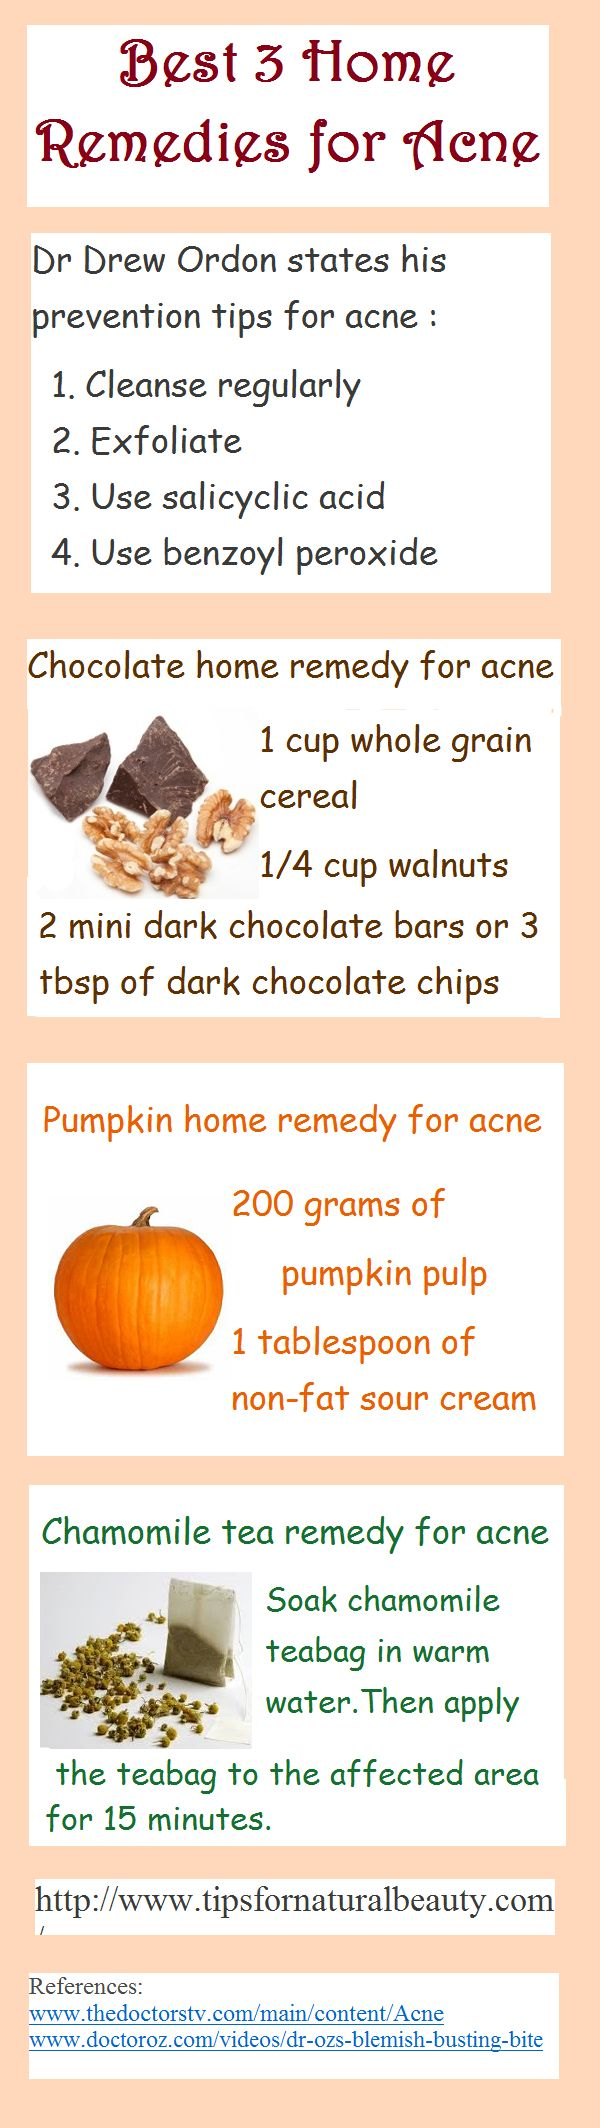 Acne Best Three Home Remedies for Acne   Tips for Natural Beauty